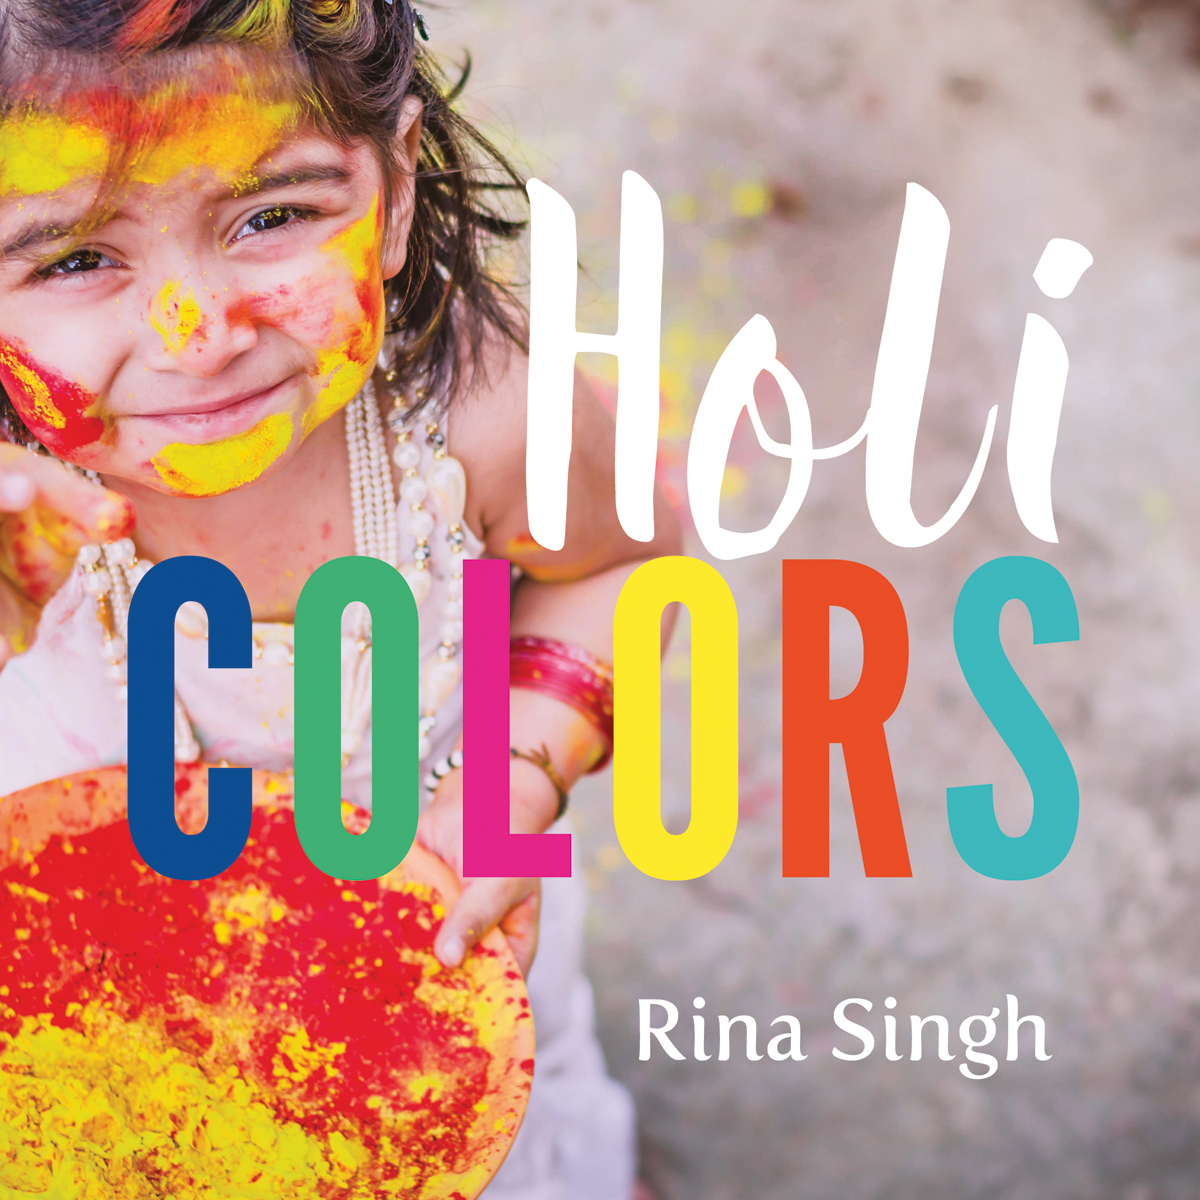 Author Feature: Rina Singh